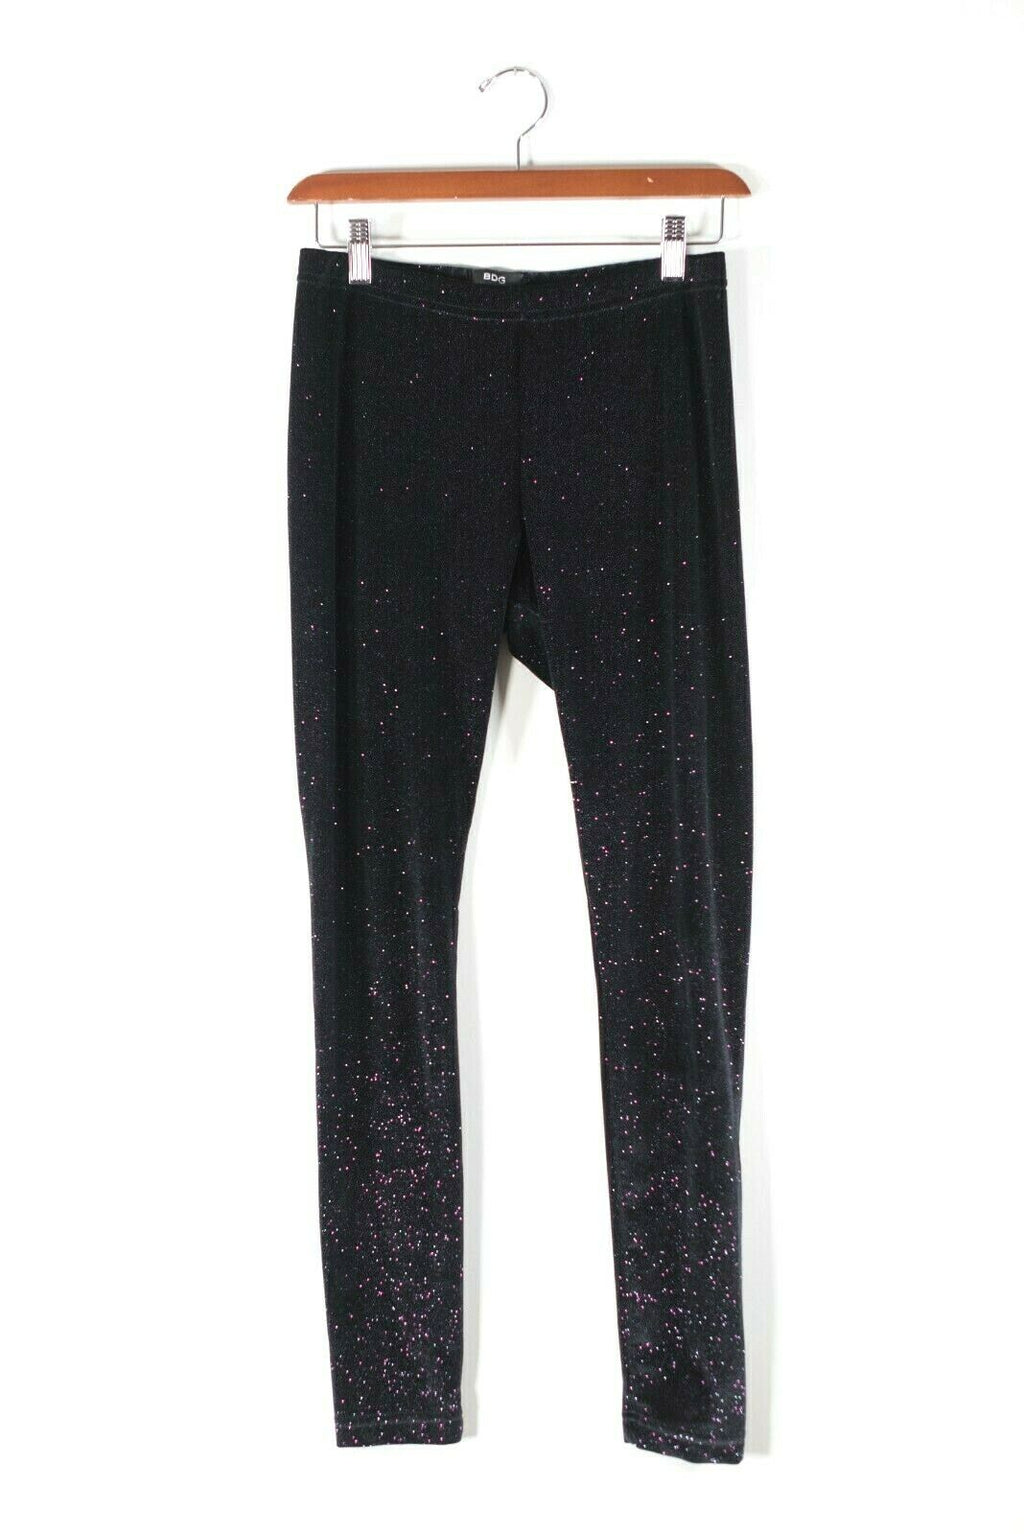 BDG Urban Outfitters Medium Black Leggings Velvet Sparkle Full Length Glitter